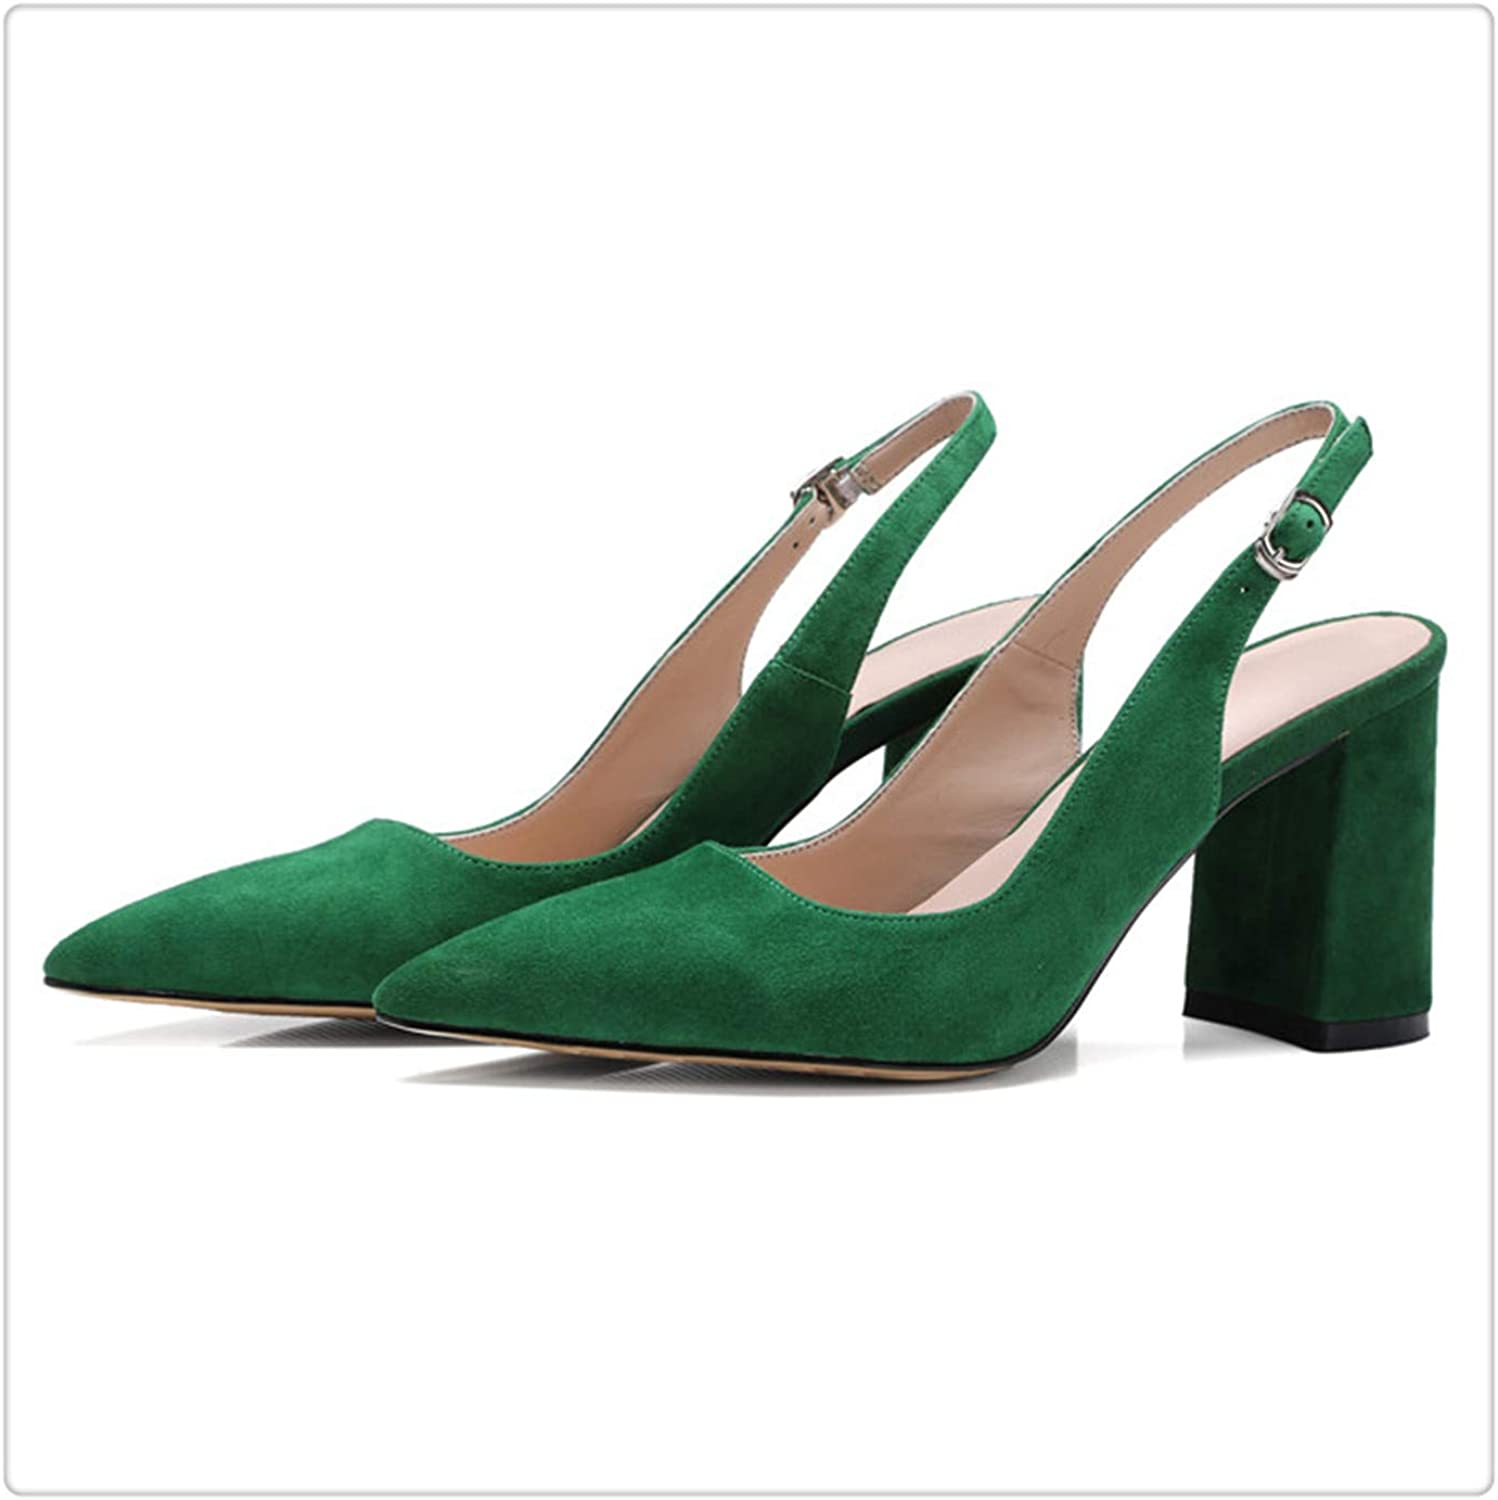 Dmoshibei Kid Suede High Heels Pointed Toe Slingbacks Thick Pumps Autumn Lady Party Heels